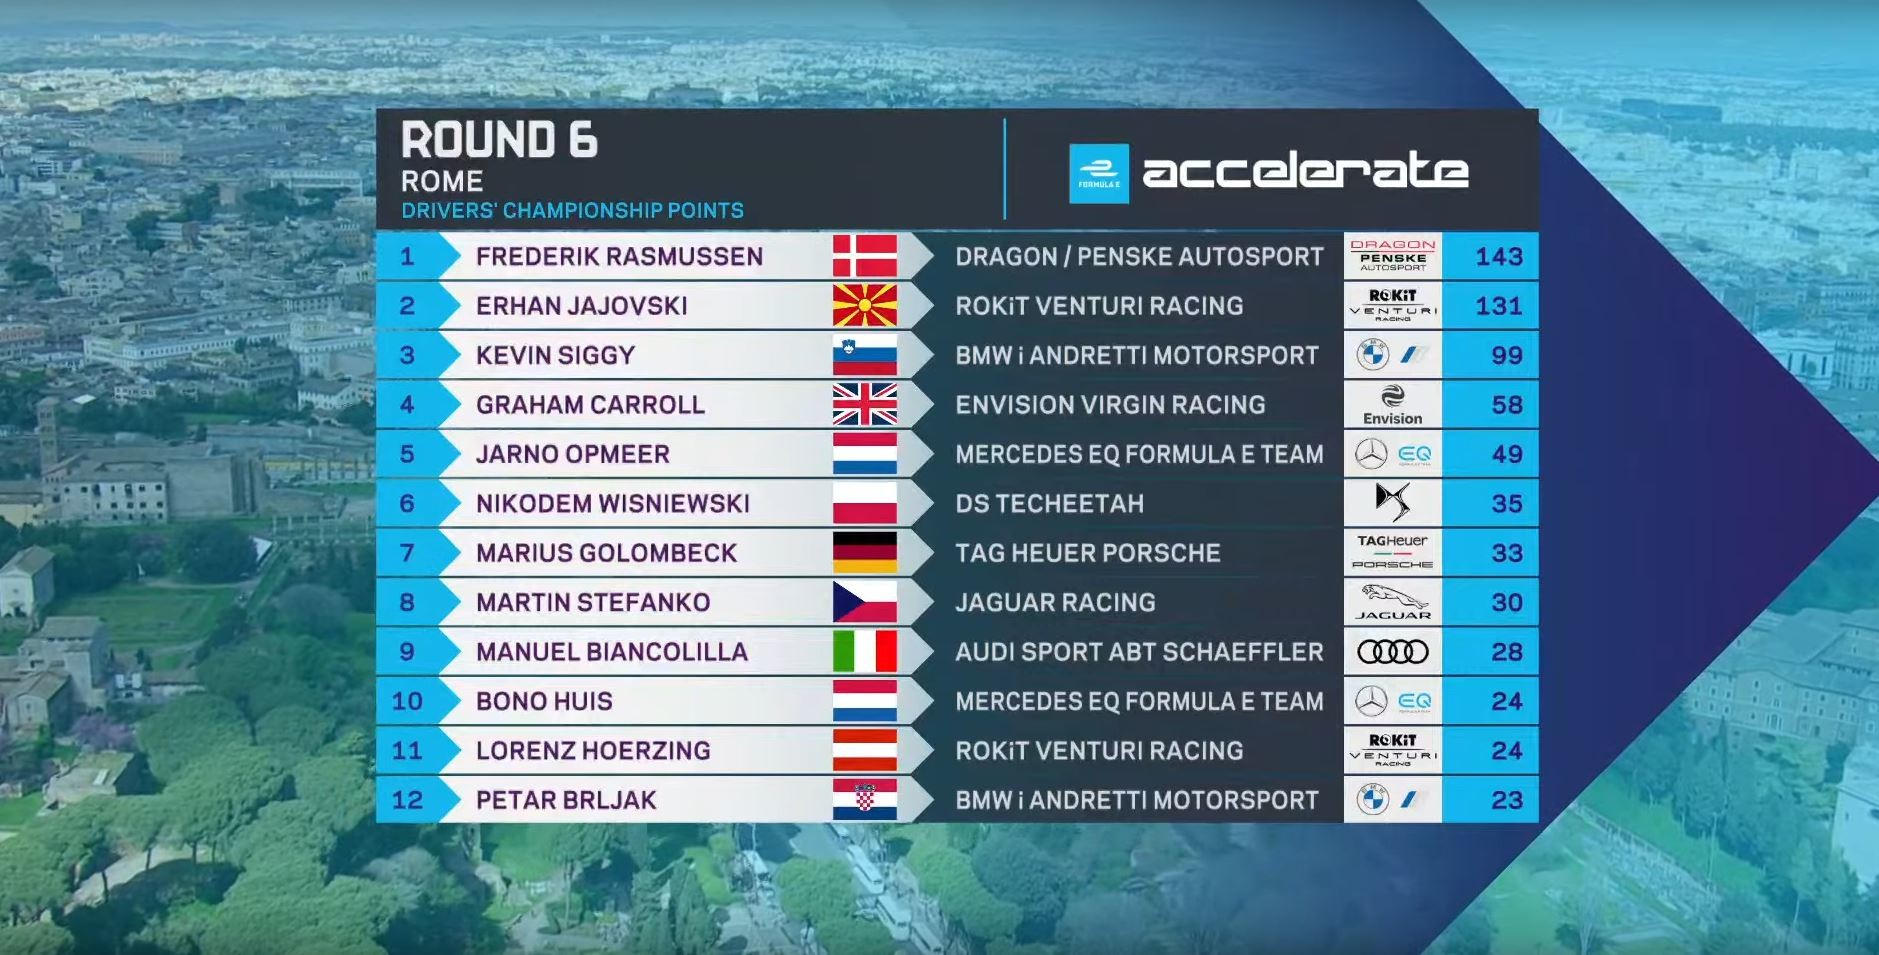 The driver standings of the Formula E: Accelerate